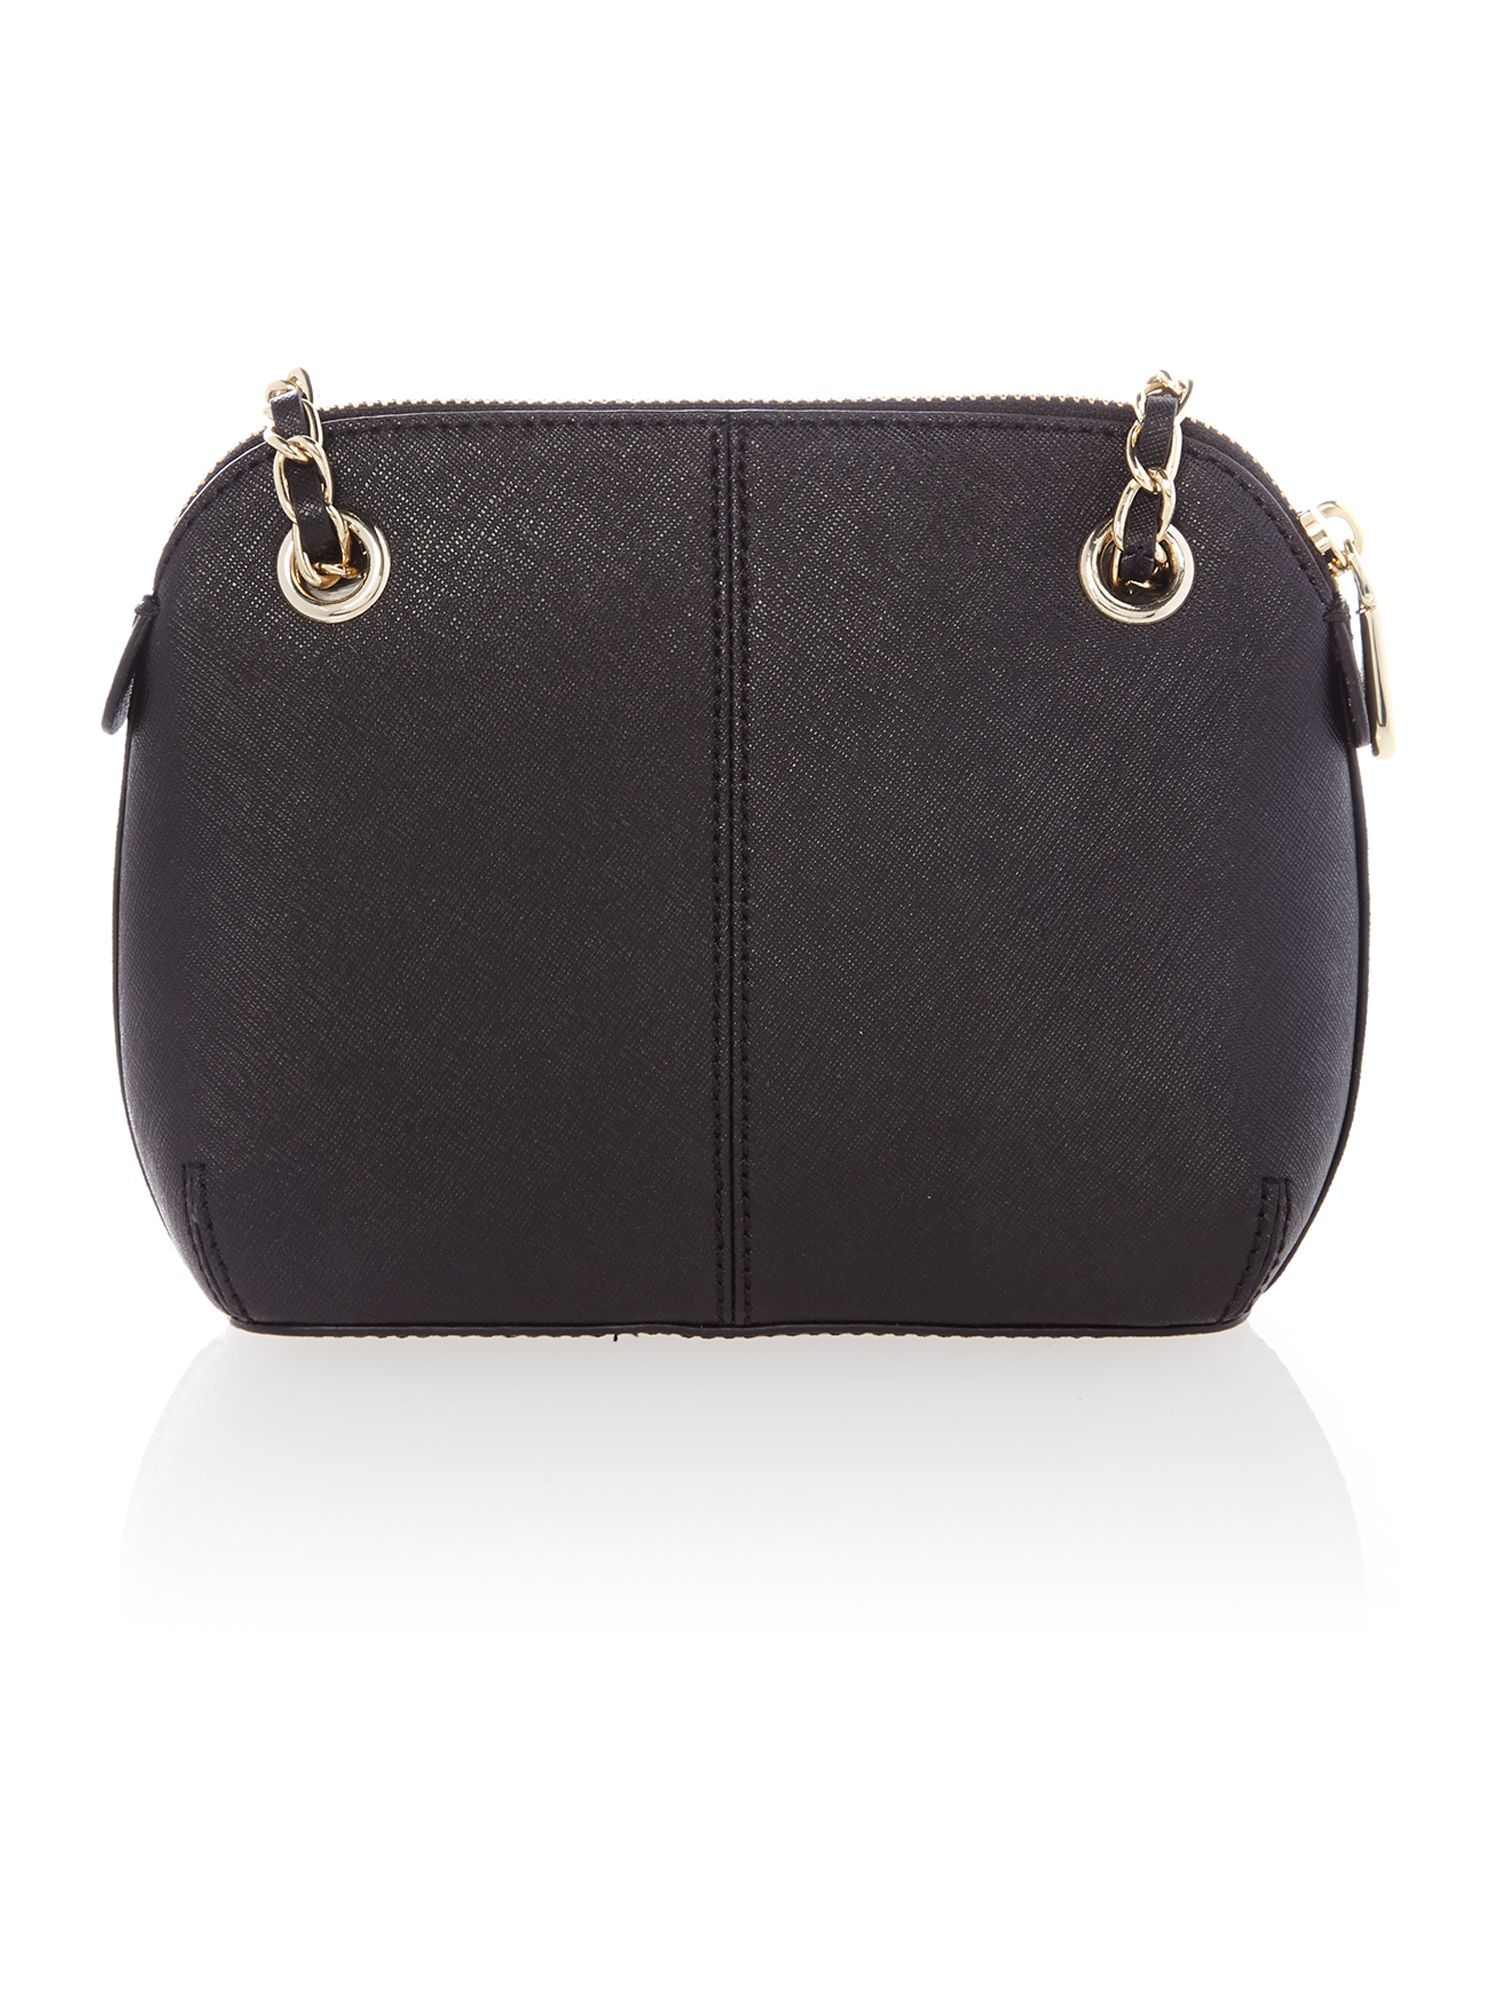 Saffiano black small rounded cross body bag